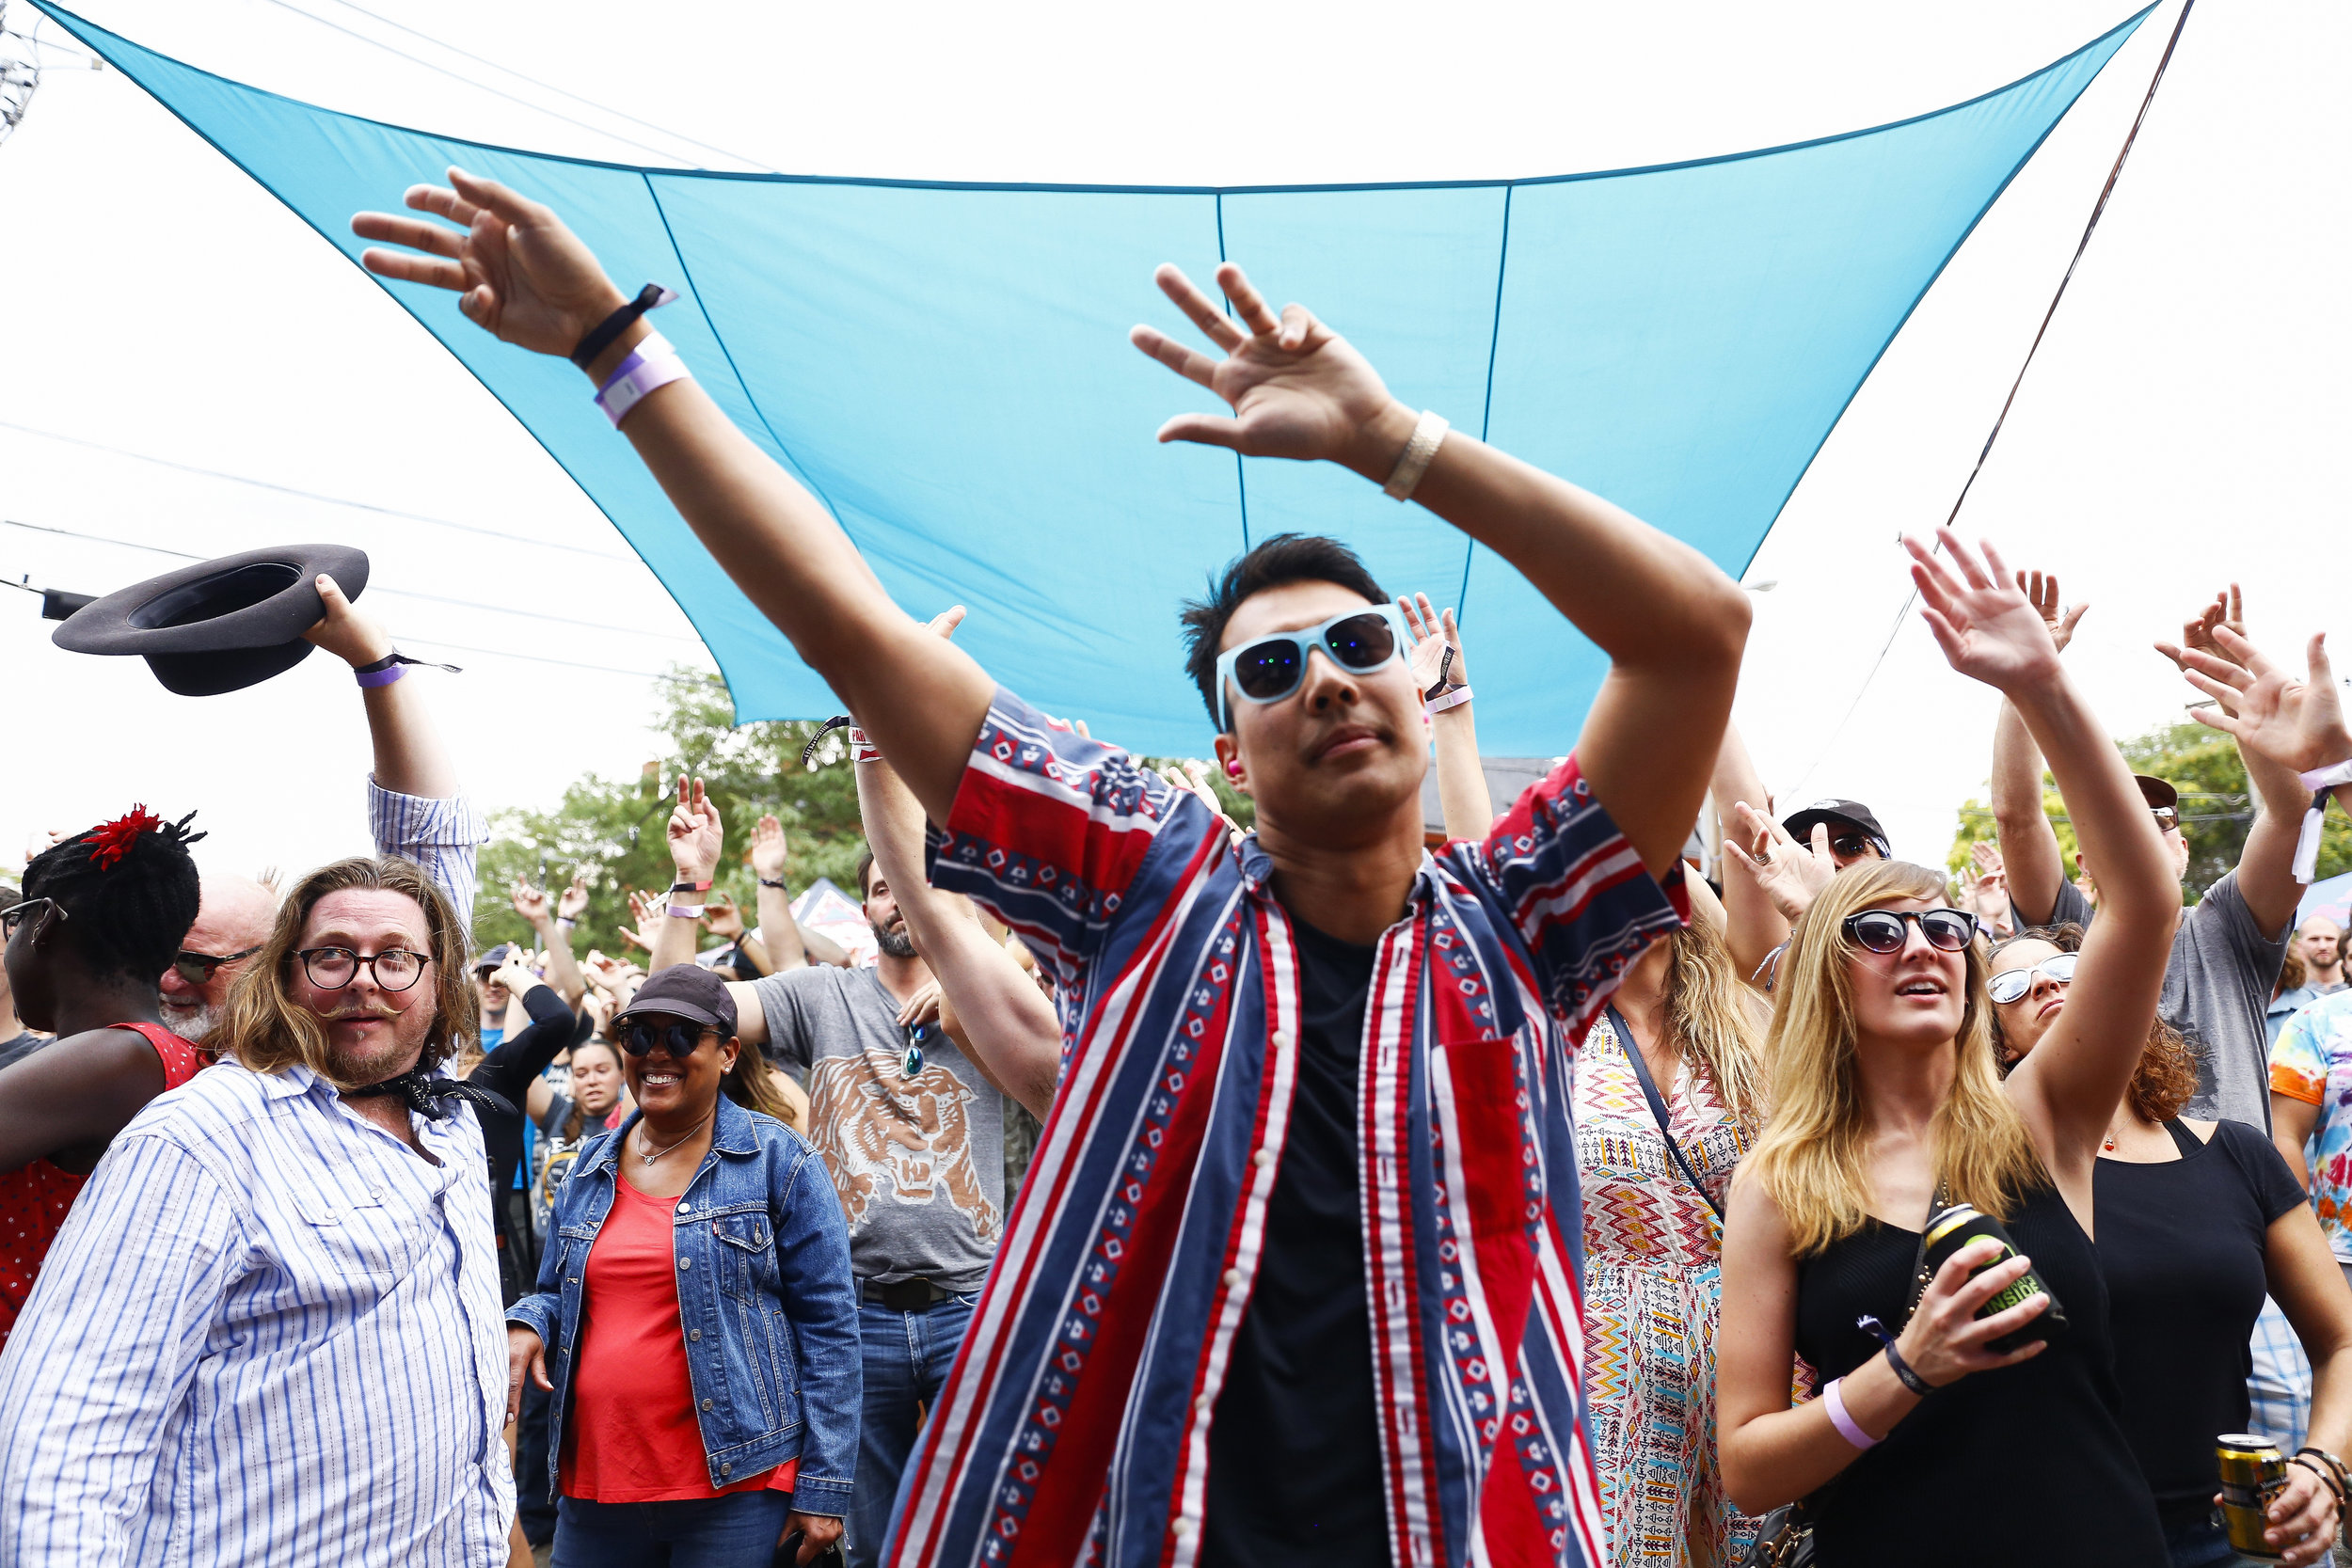 The crowd is high energy as Hot 8 Brass Band performs at Sesh Stage presented by Two Parts on July 28 at the 18th annual Underground Music Showcase in Denver. Photo by Alyson McClaran